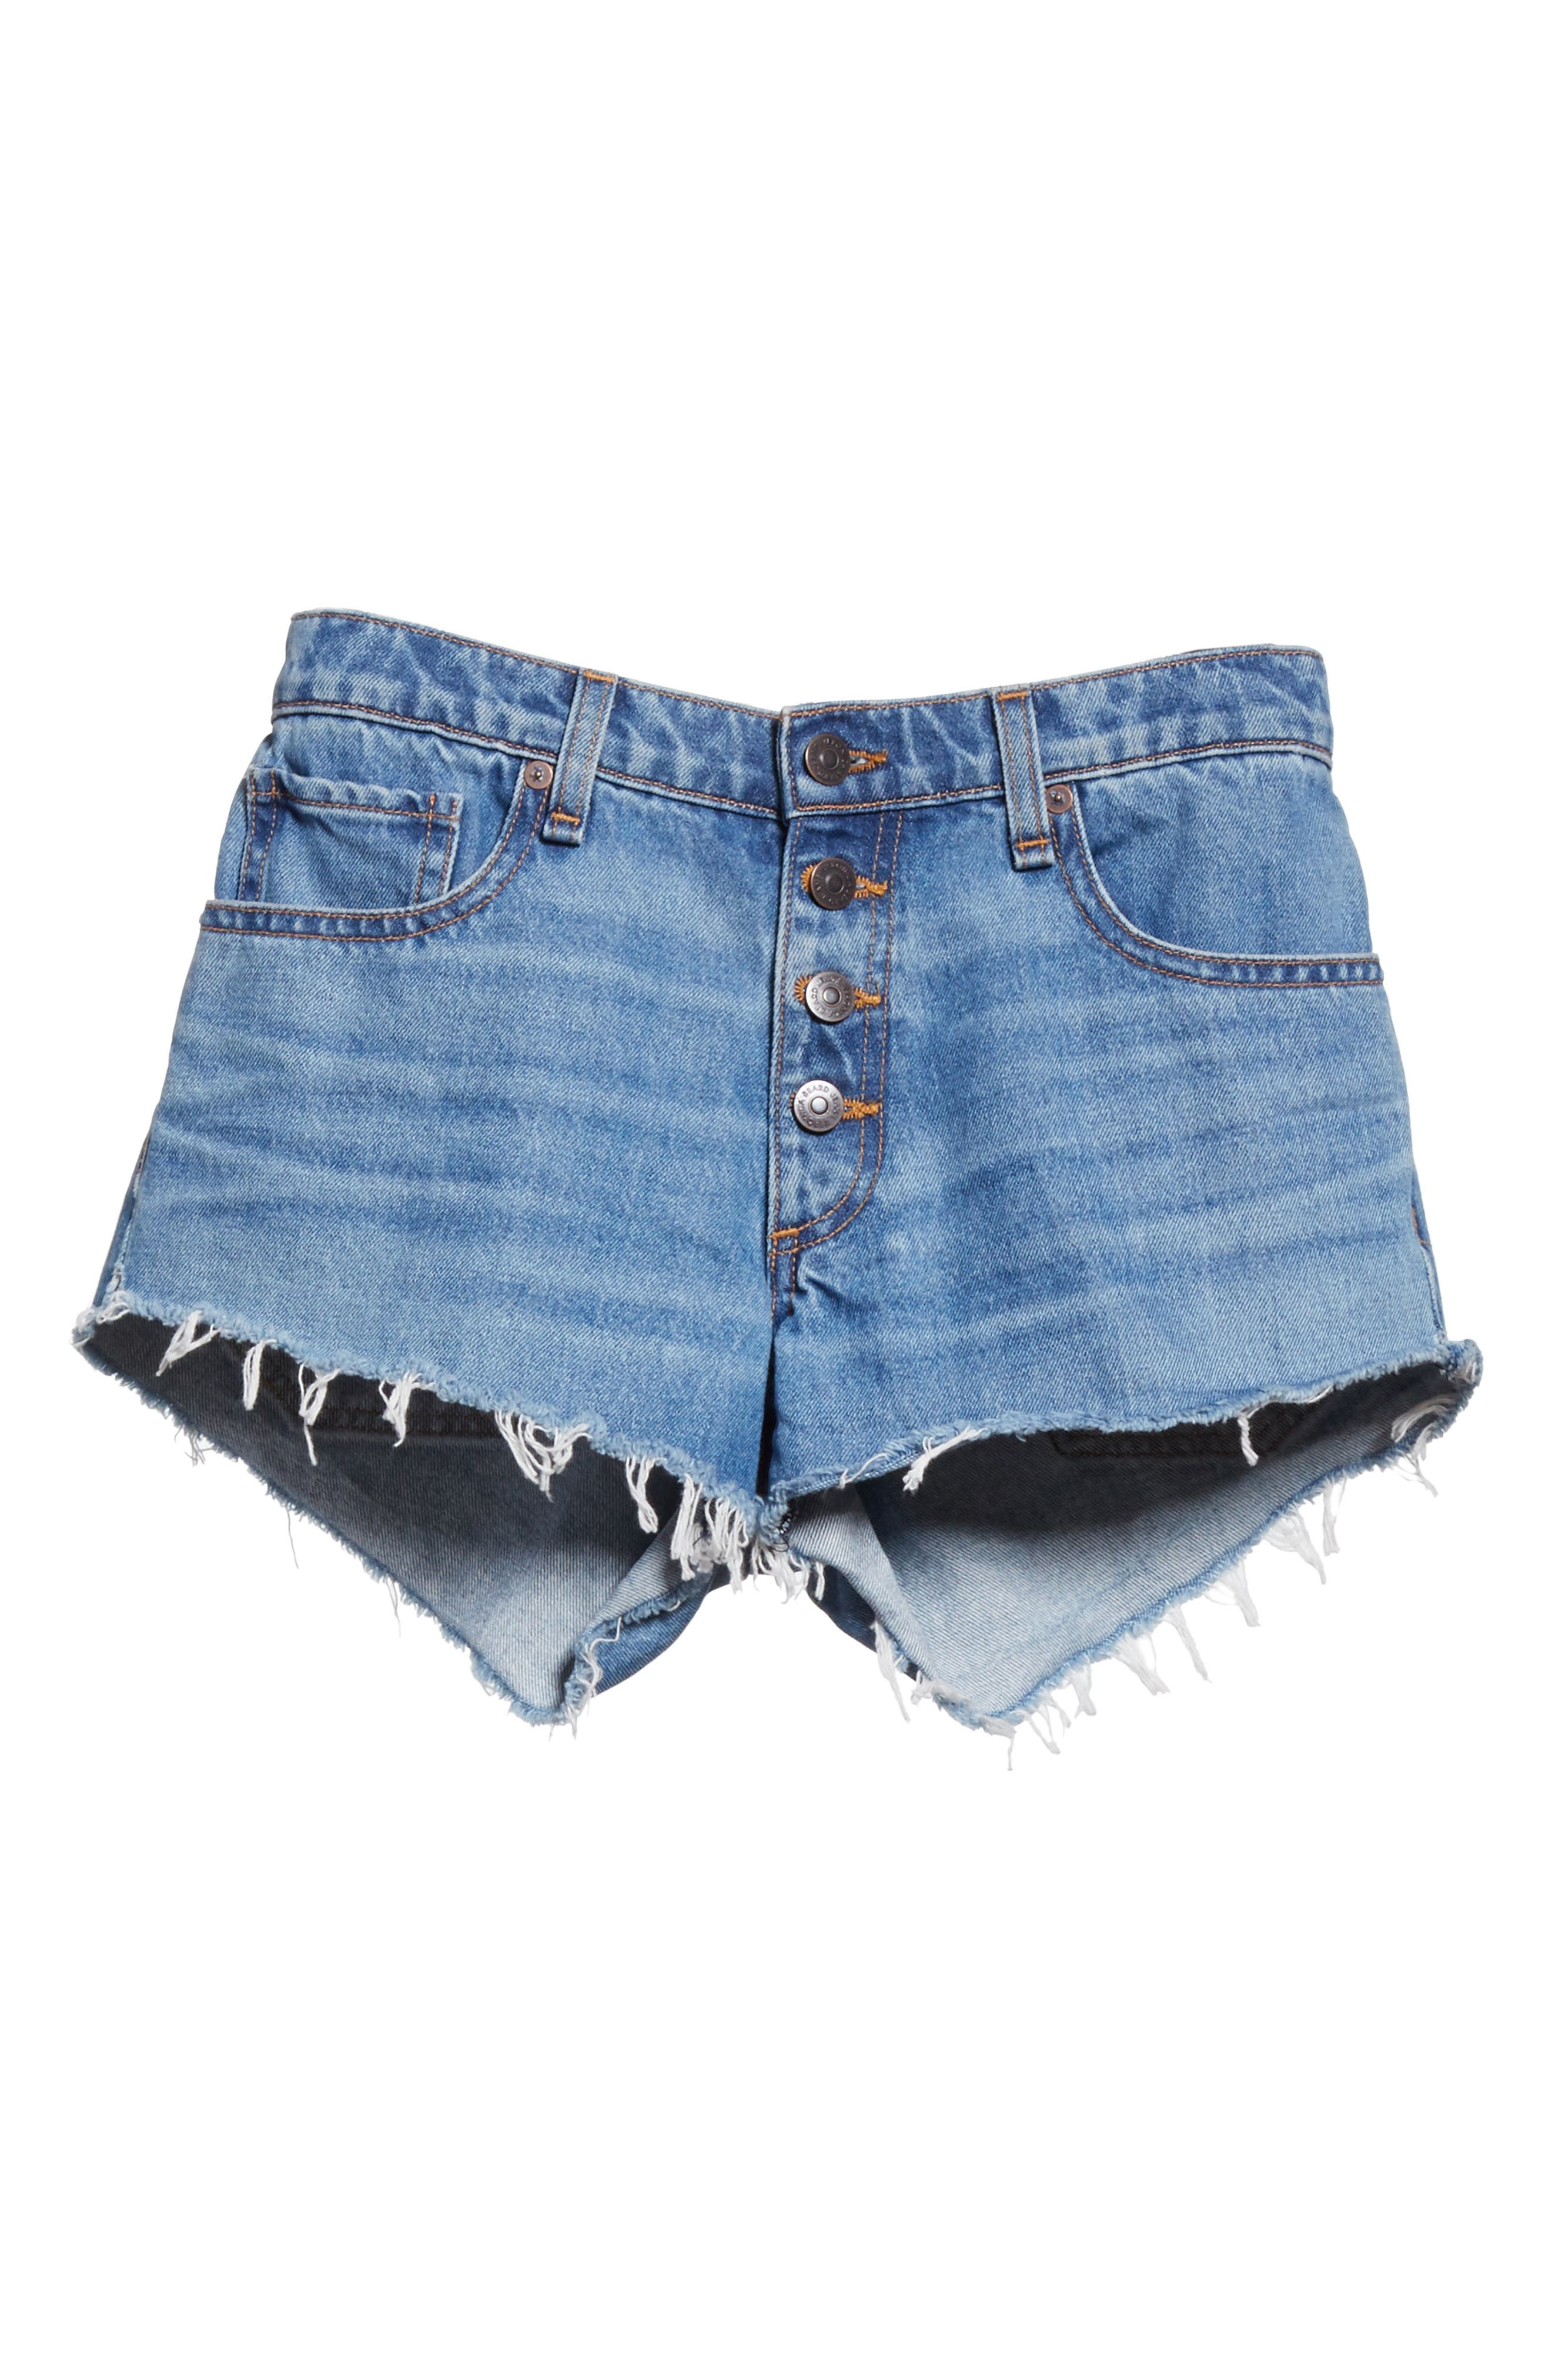 Debbie Denim Shorts,                             Alternate thumbnail 6, color,                             Pipeline